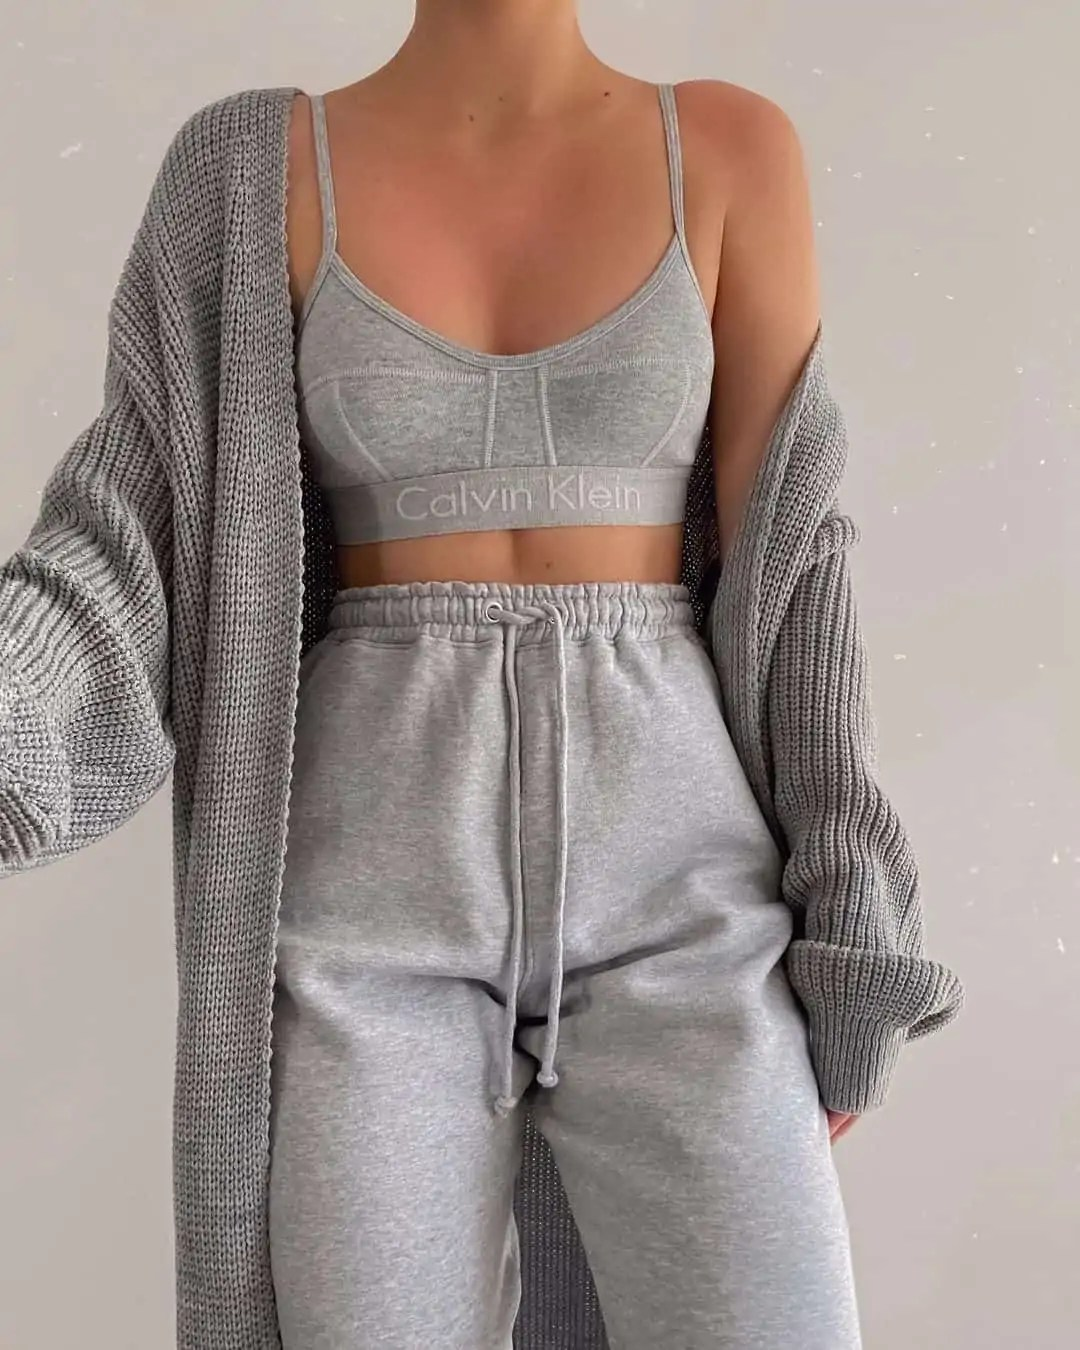 100+ Outfits to Inspire your next shopping haul 69